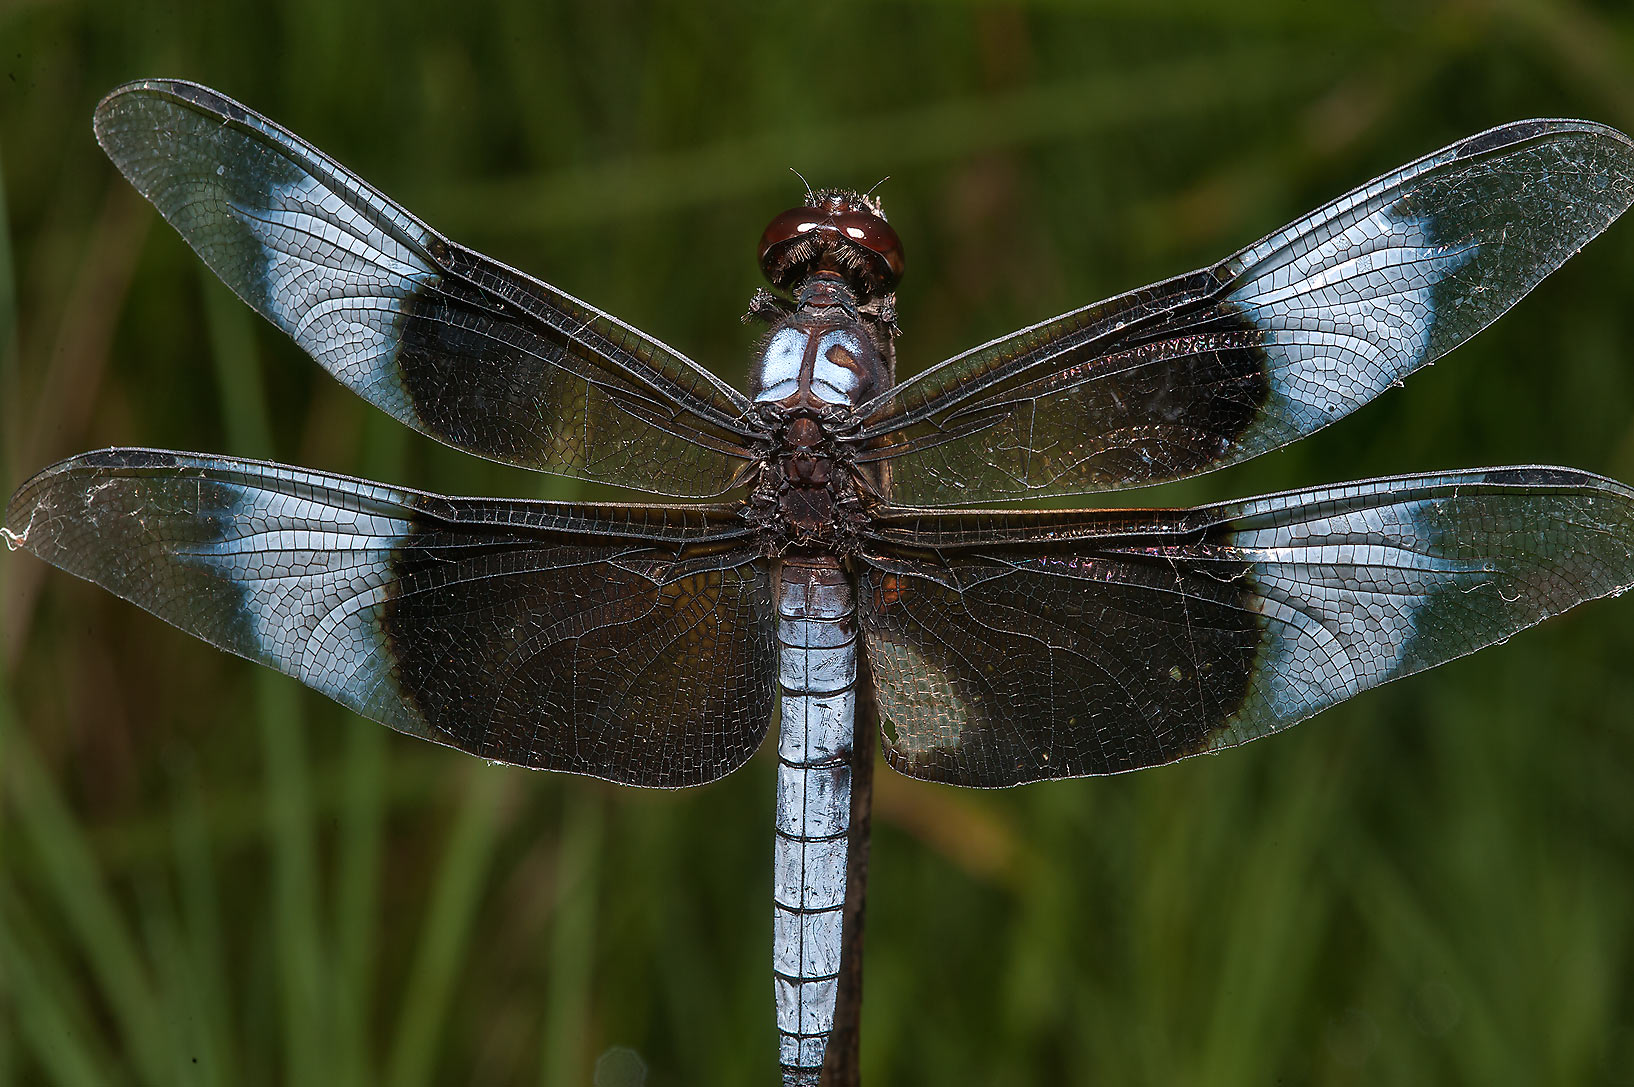 Black and grey dragonfly in Lick Creek Park. College Station, Texas